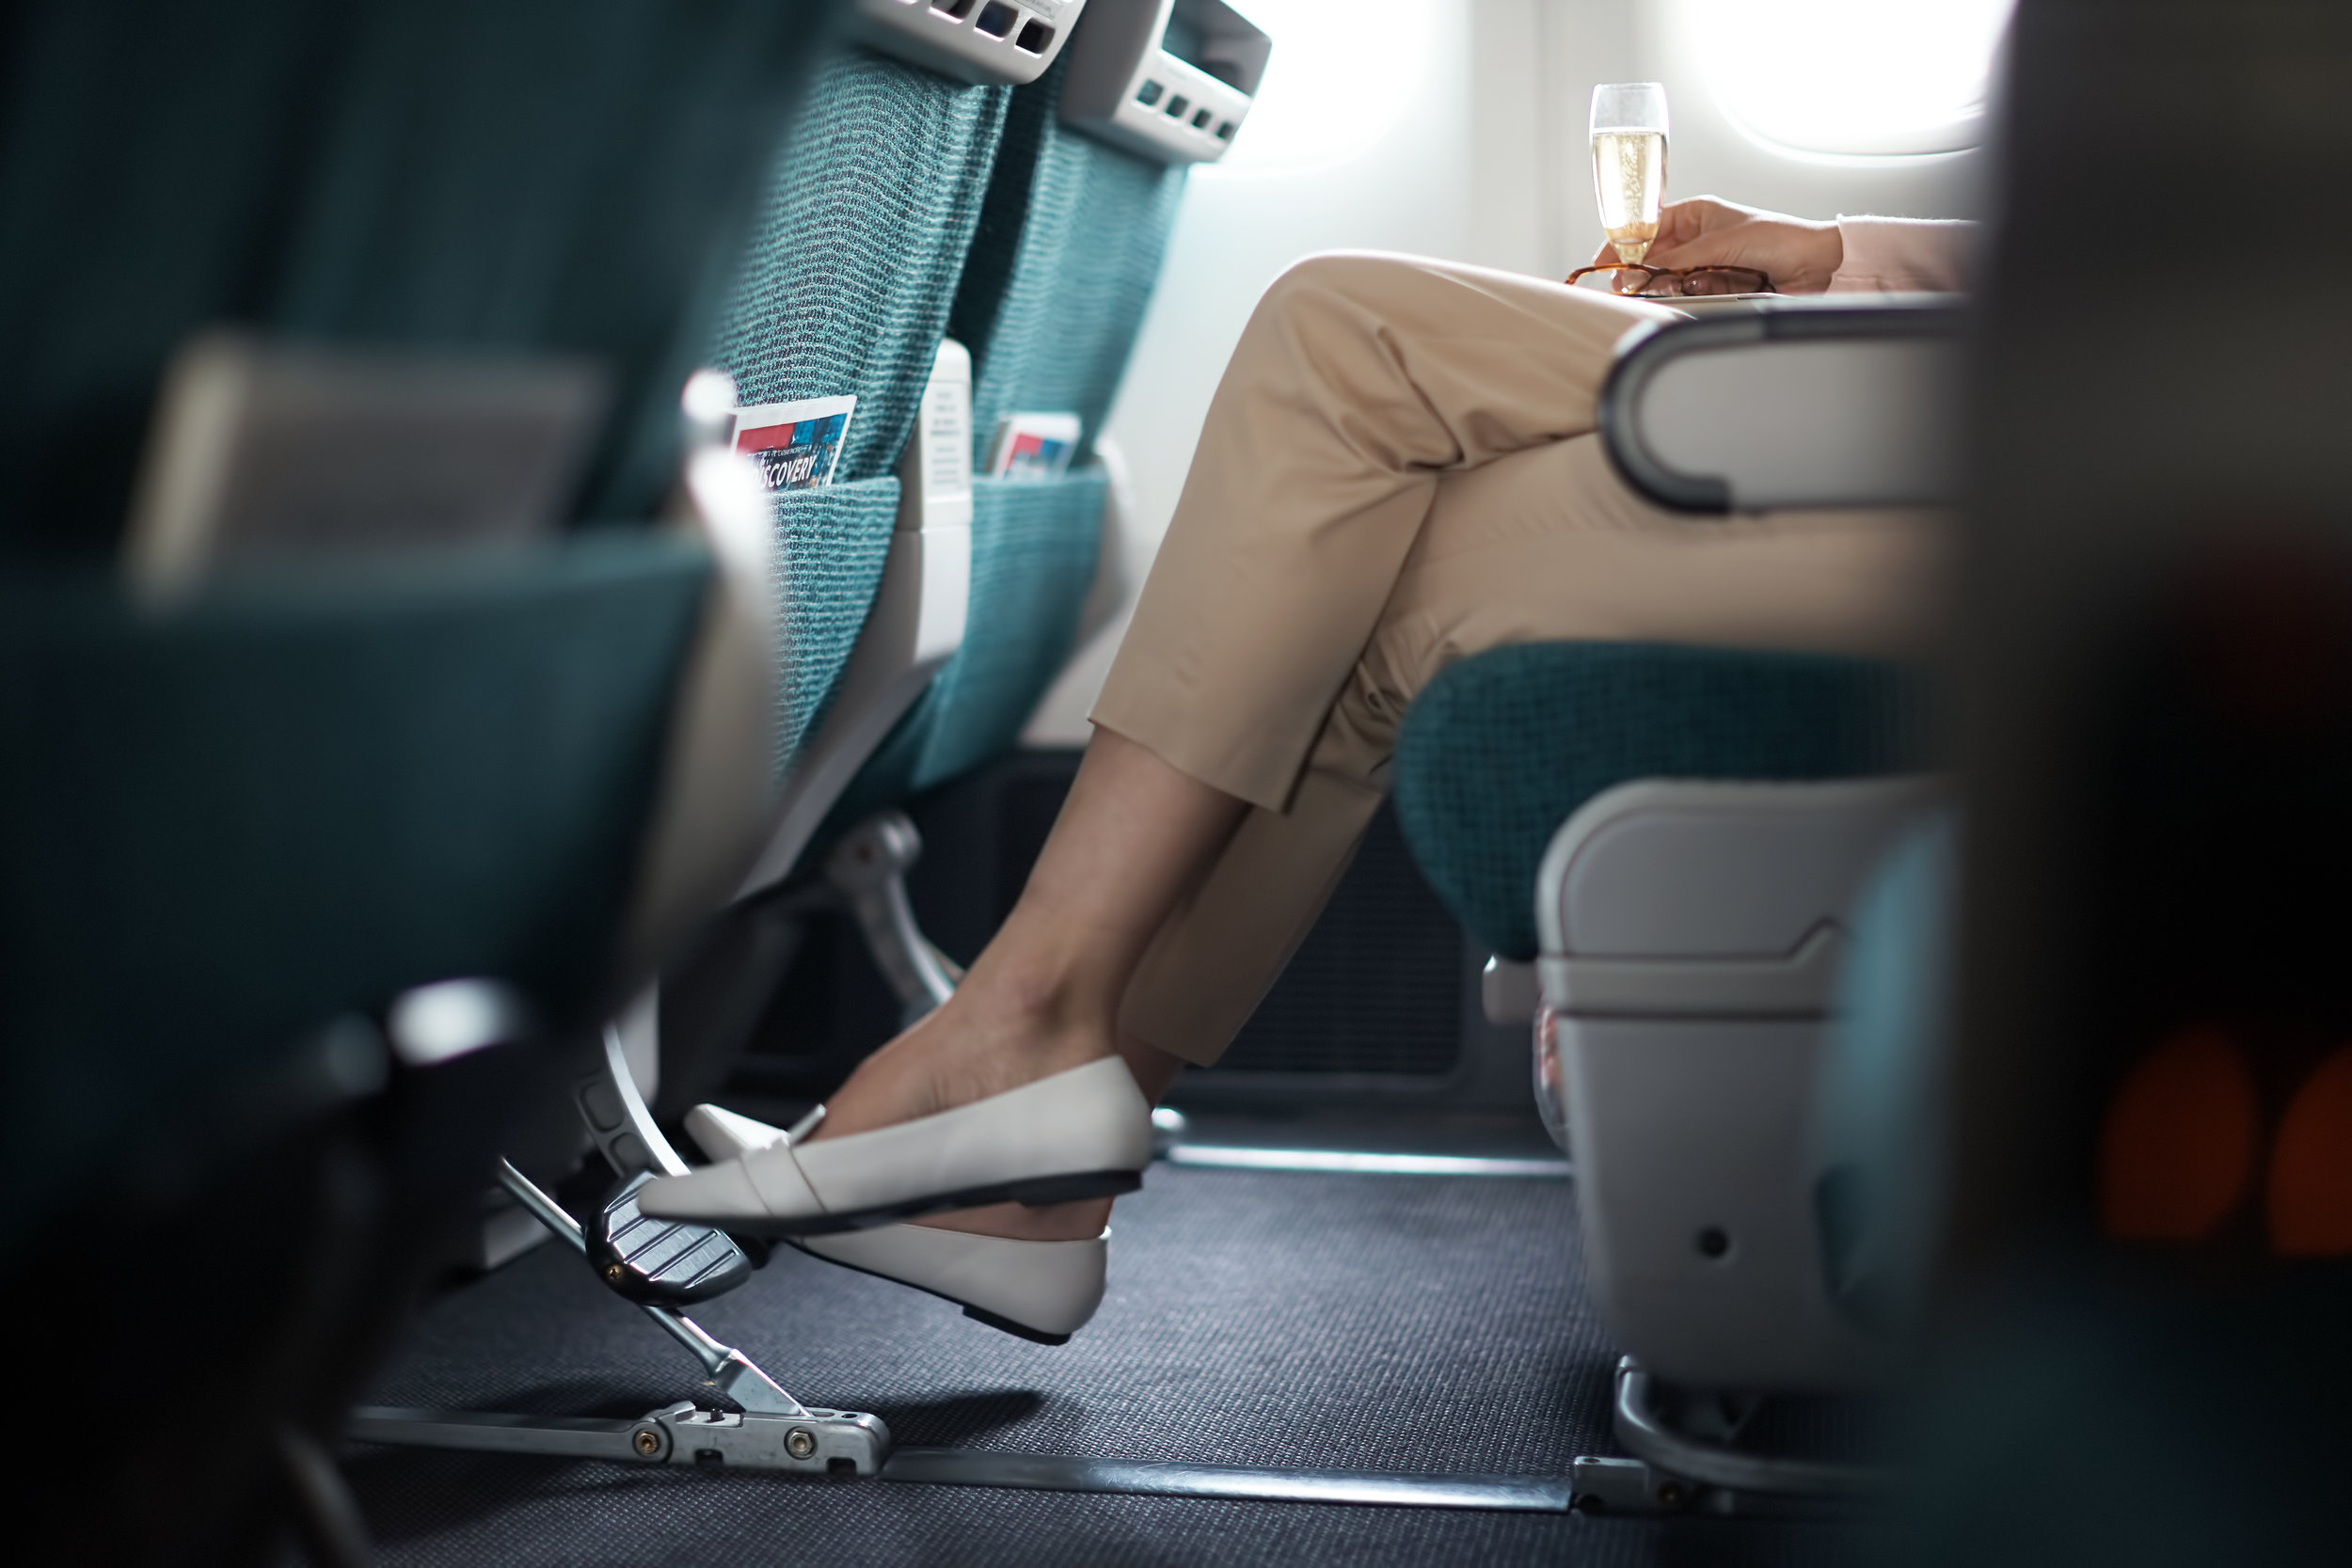 With multiposition headrests for snoozing and ample legroom, even Economy is a well-curated experience aboard Cathay.